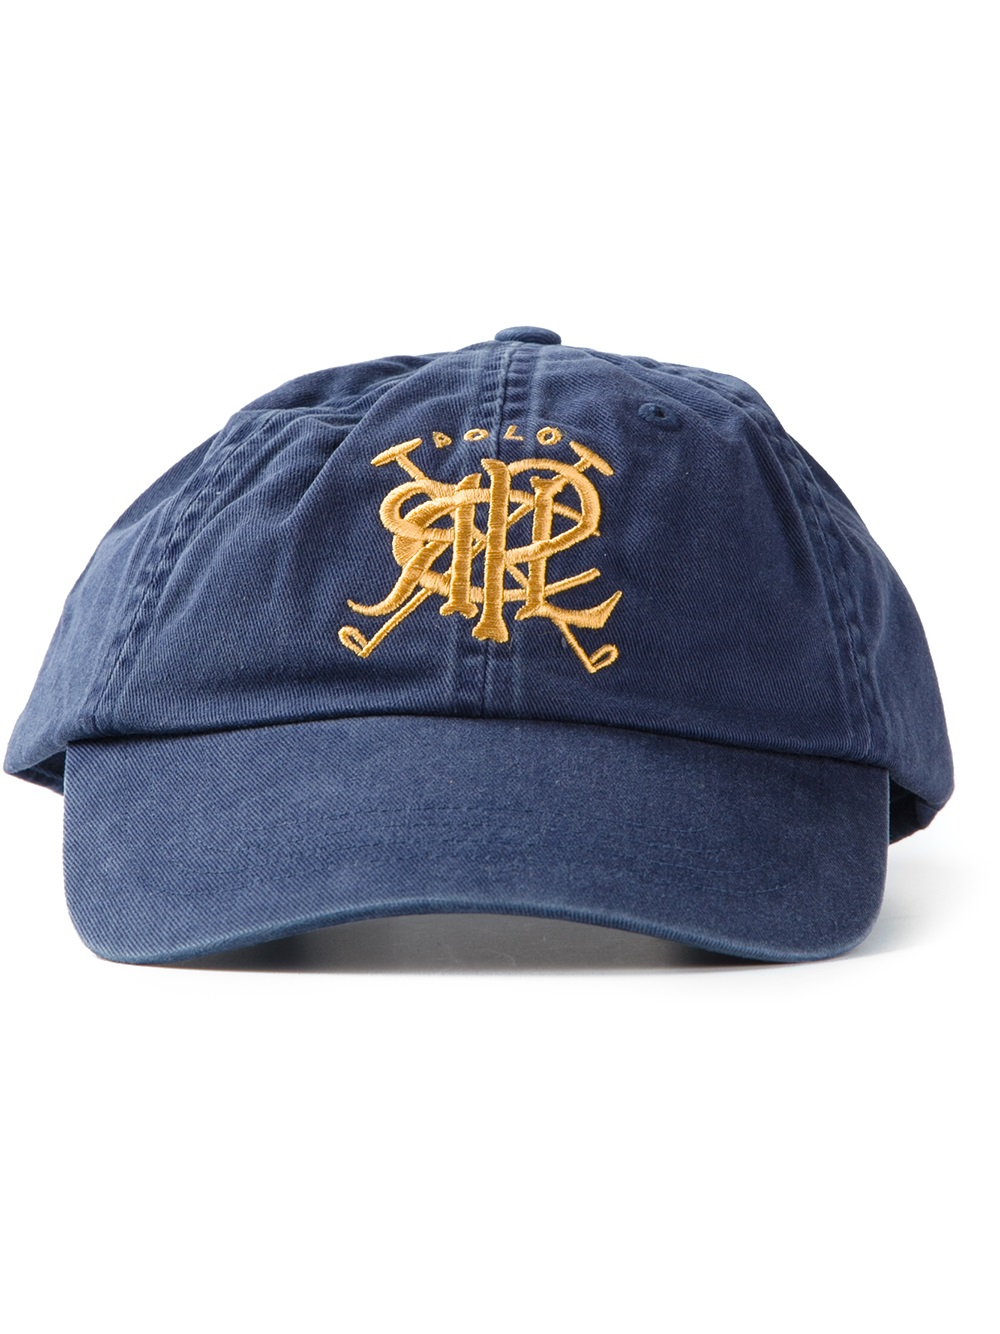 lyst polo ralph lauren crest embroidered baseball cap in. Black Bedroom Furniture Sets. Home Design Ideas